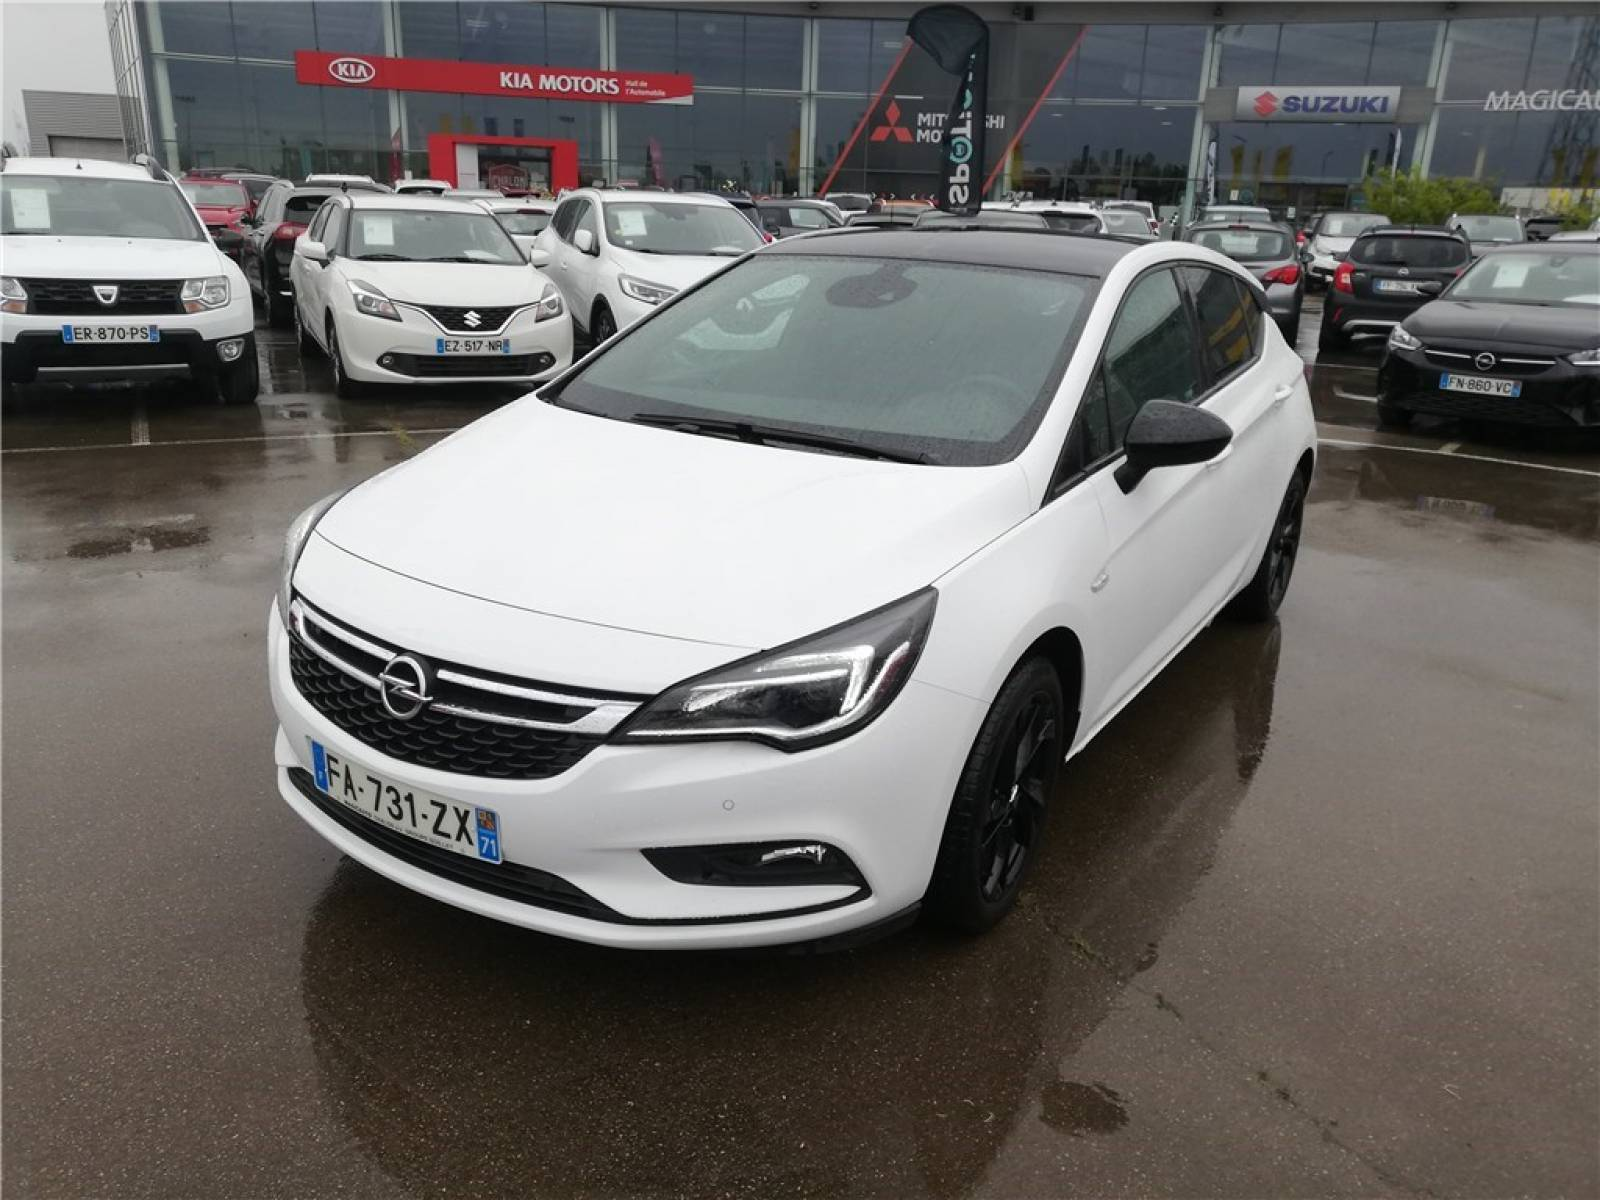 OPEL Astra 1.0 Turbo 105 ch ECOTEC Start/Stop - véhicule d'occasion - Groupe Guillet - Opel Magicauto - Chalon-sur-Saône - 71380 - Saint-Marcel - 1